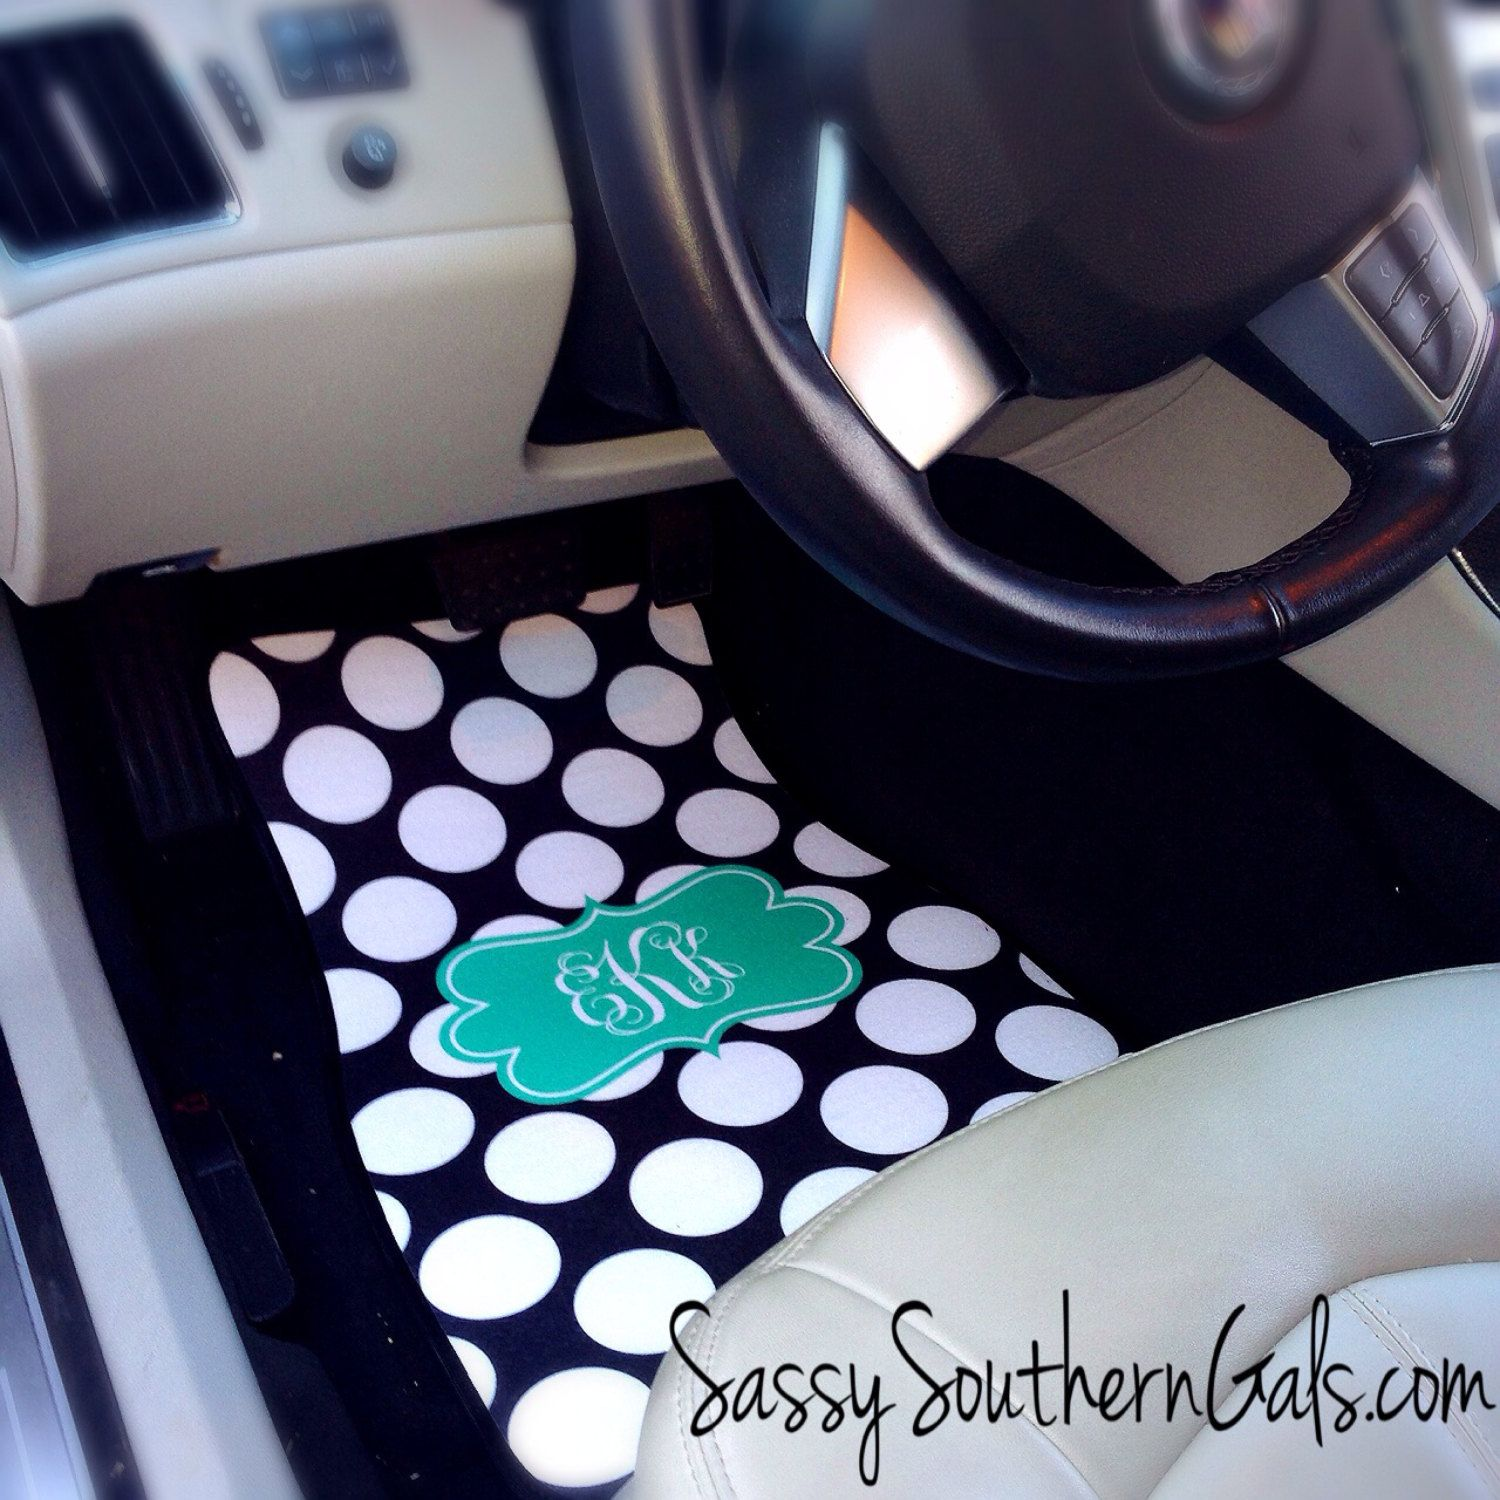 Design Your Own Floor Mats For Trucks